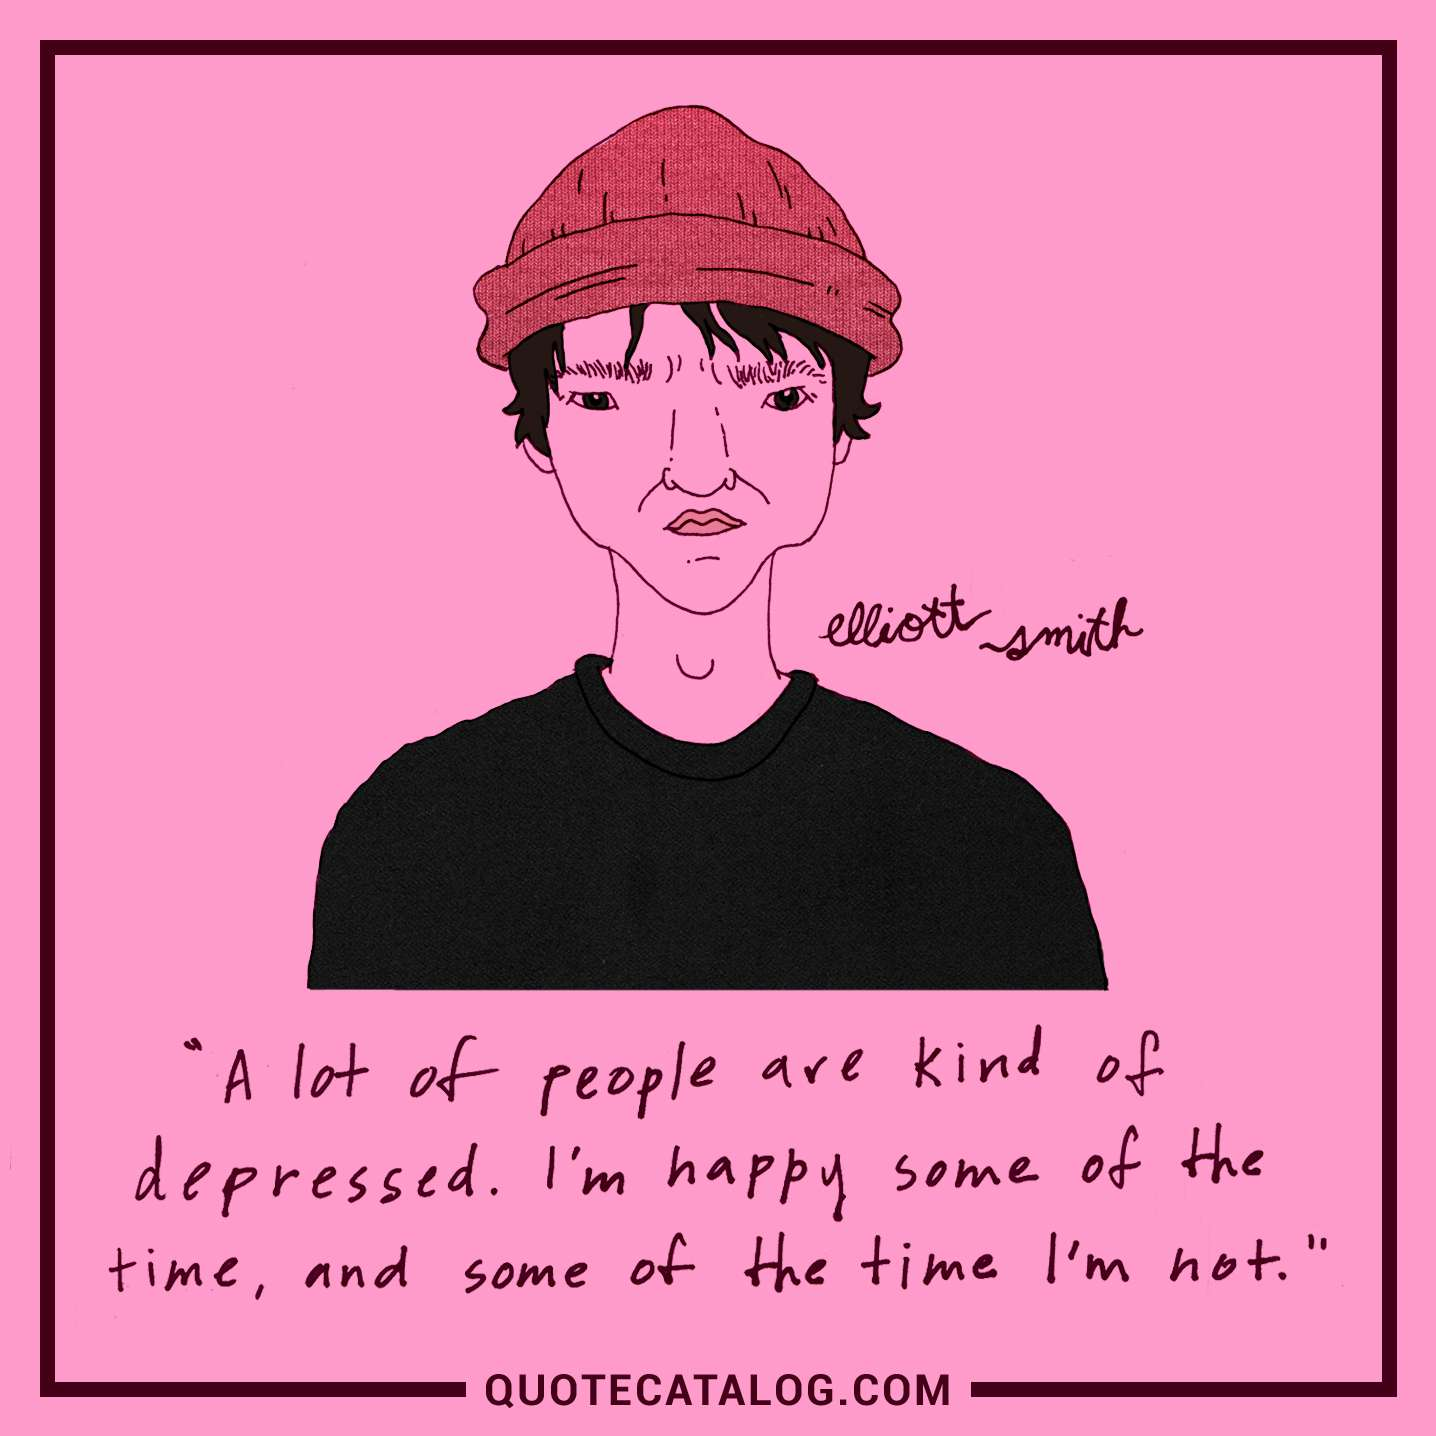 Image of: Lot Of People Are Kind Of Depressed Im Happy Some Of The Time And Some Of The Time Im Not Quote Catalog Elliott Smith Quote Lot Of People Are Kind Of Depressed